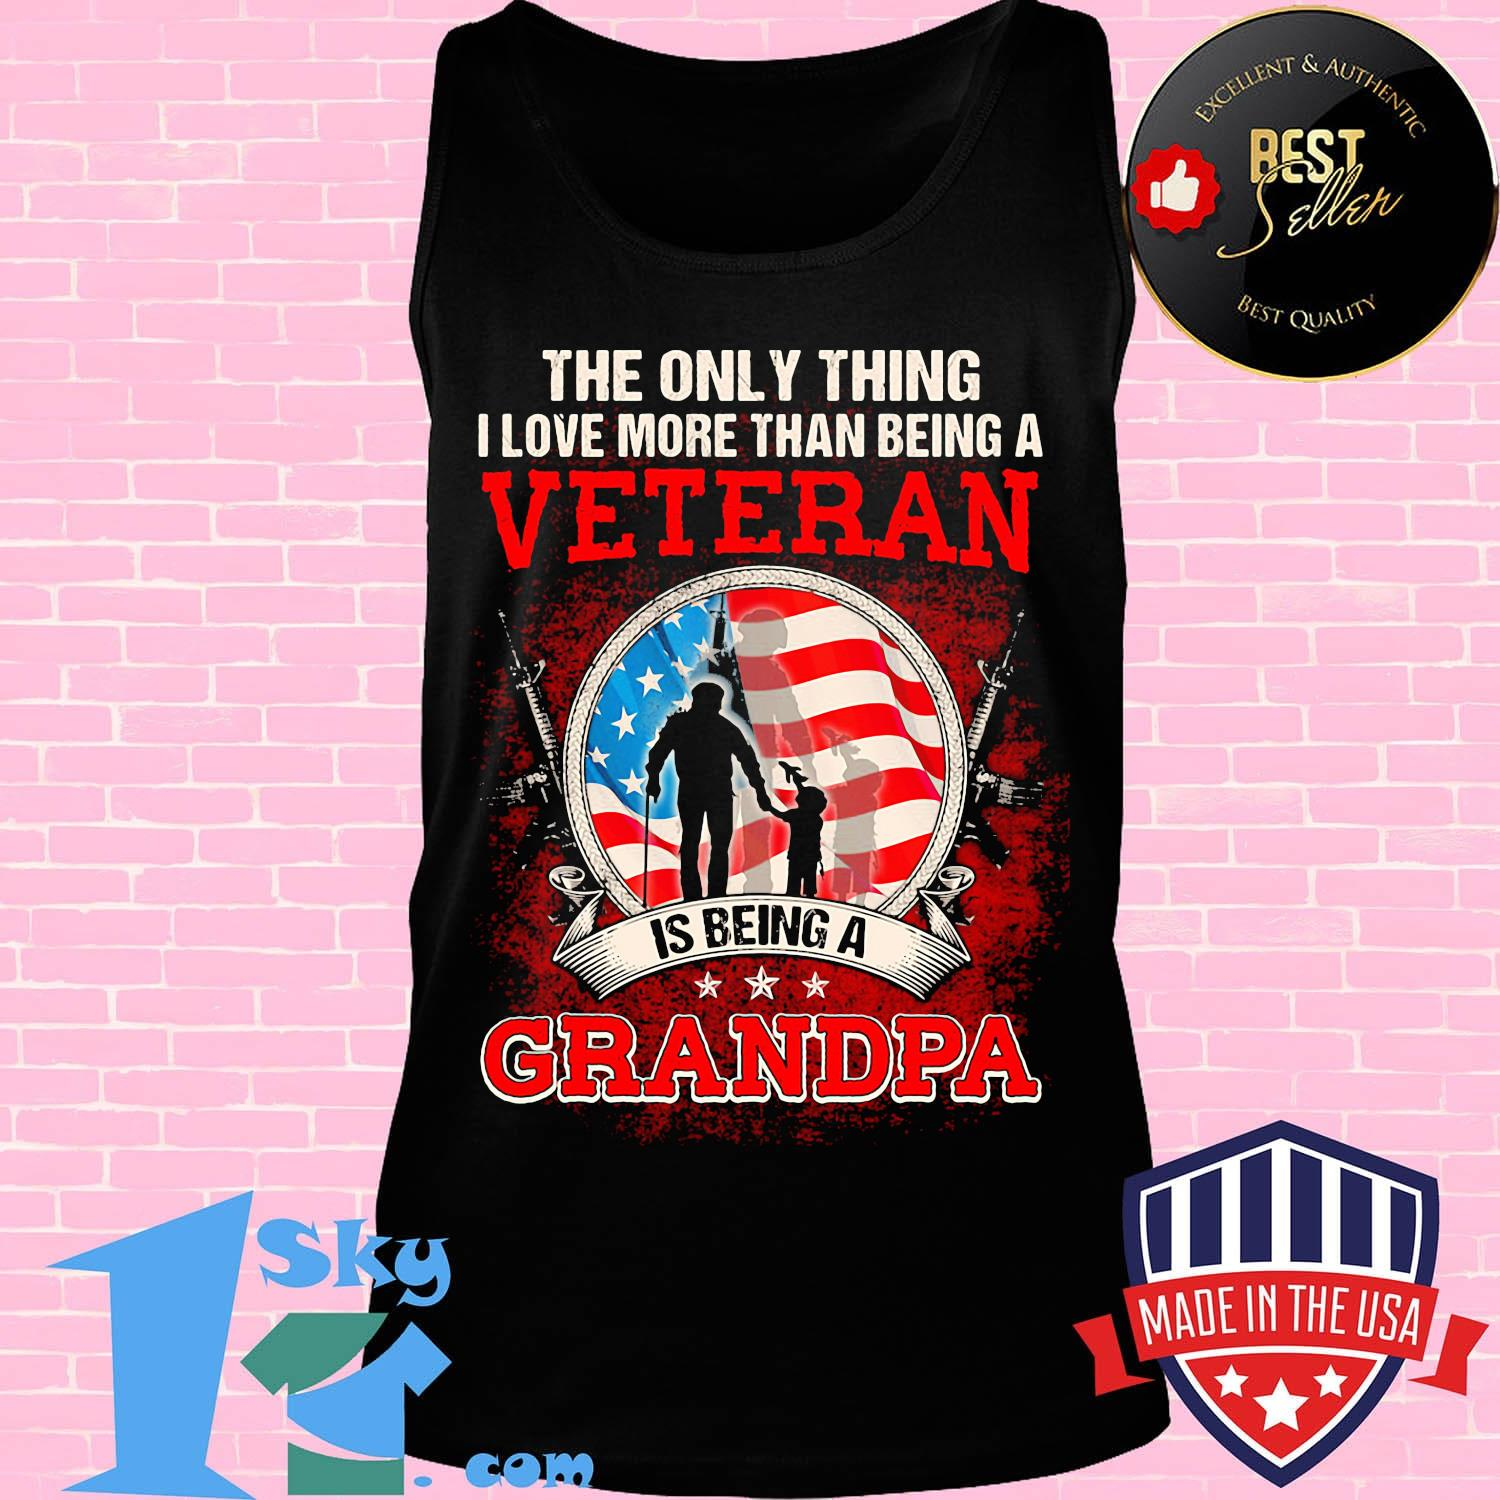 The Only Thing I Love More Than Being A Veteran is Being A Grandpa Tank Top